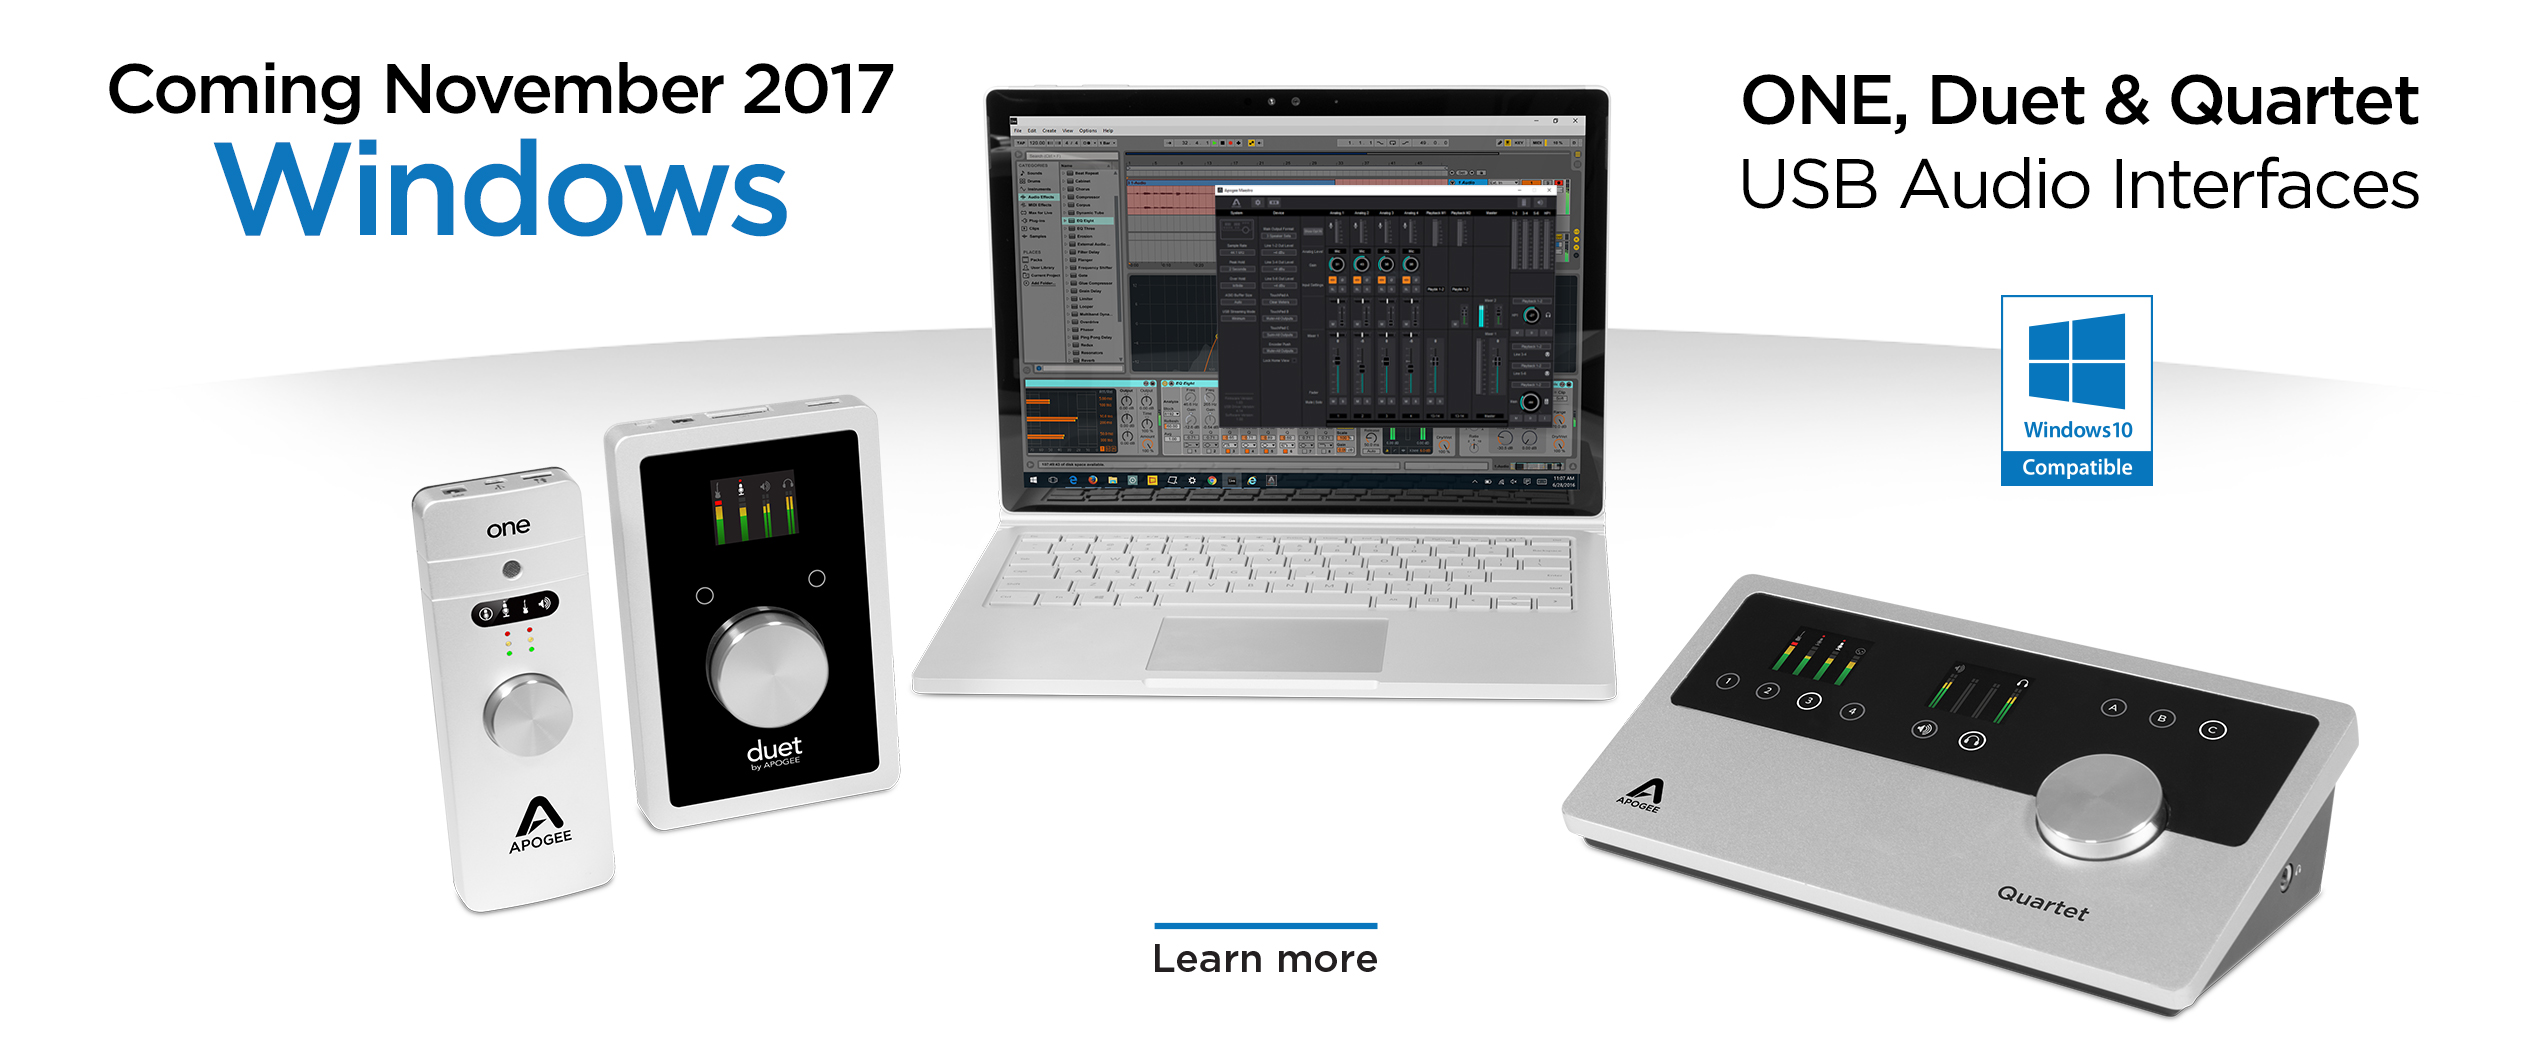 Apogee electronics audio interfaces for ipad iphone and mac for Windows home page